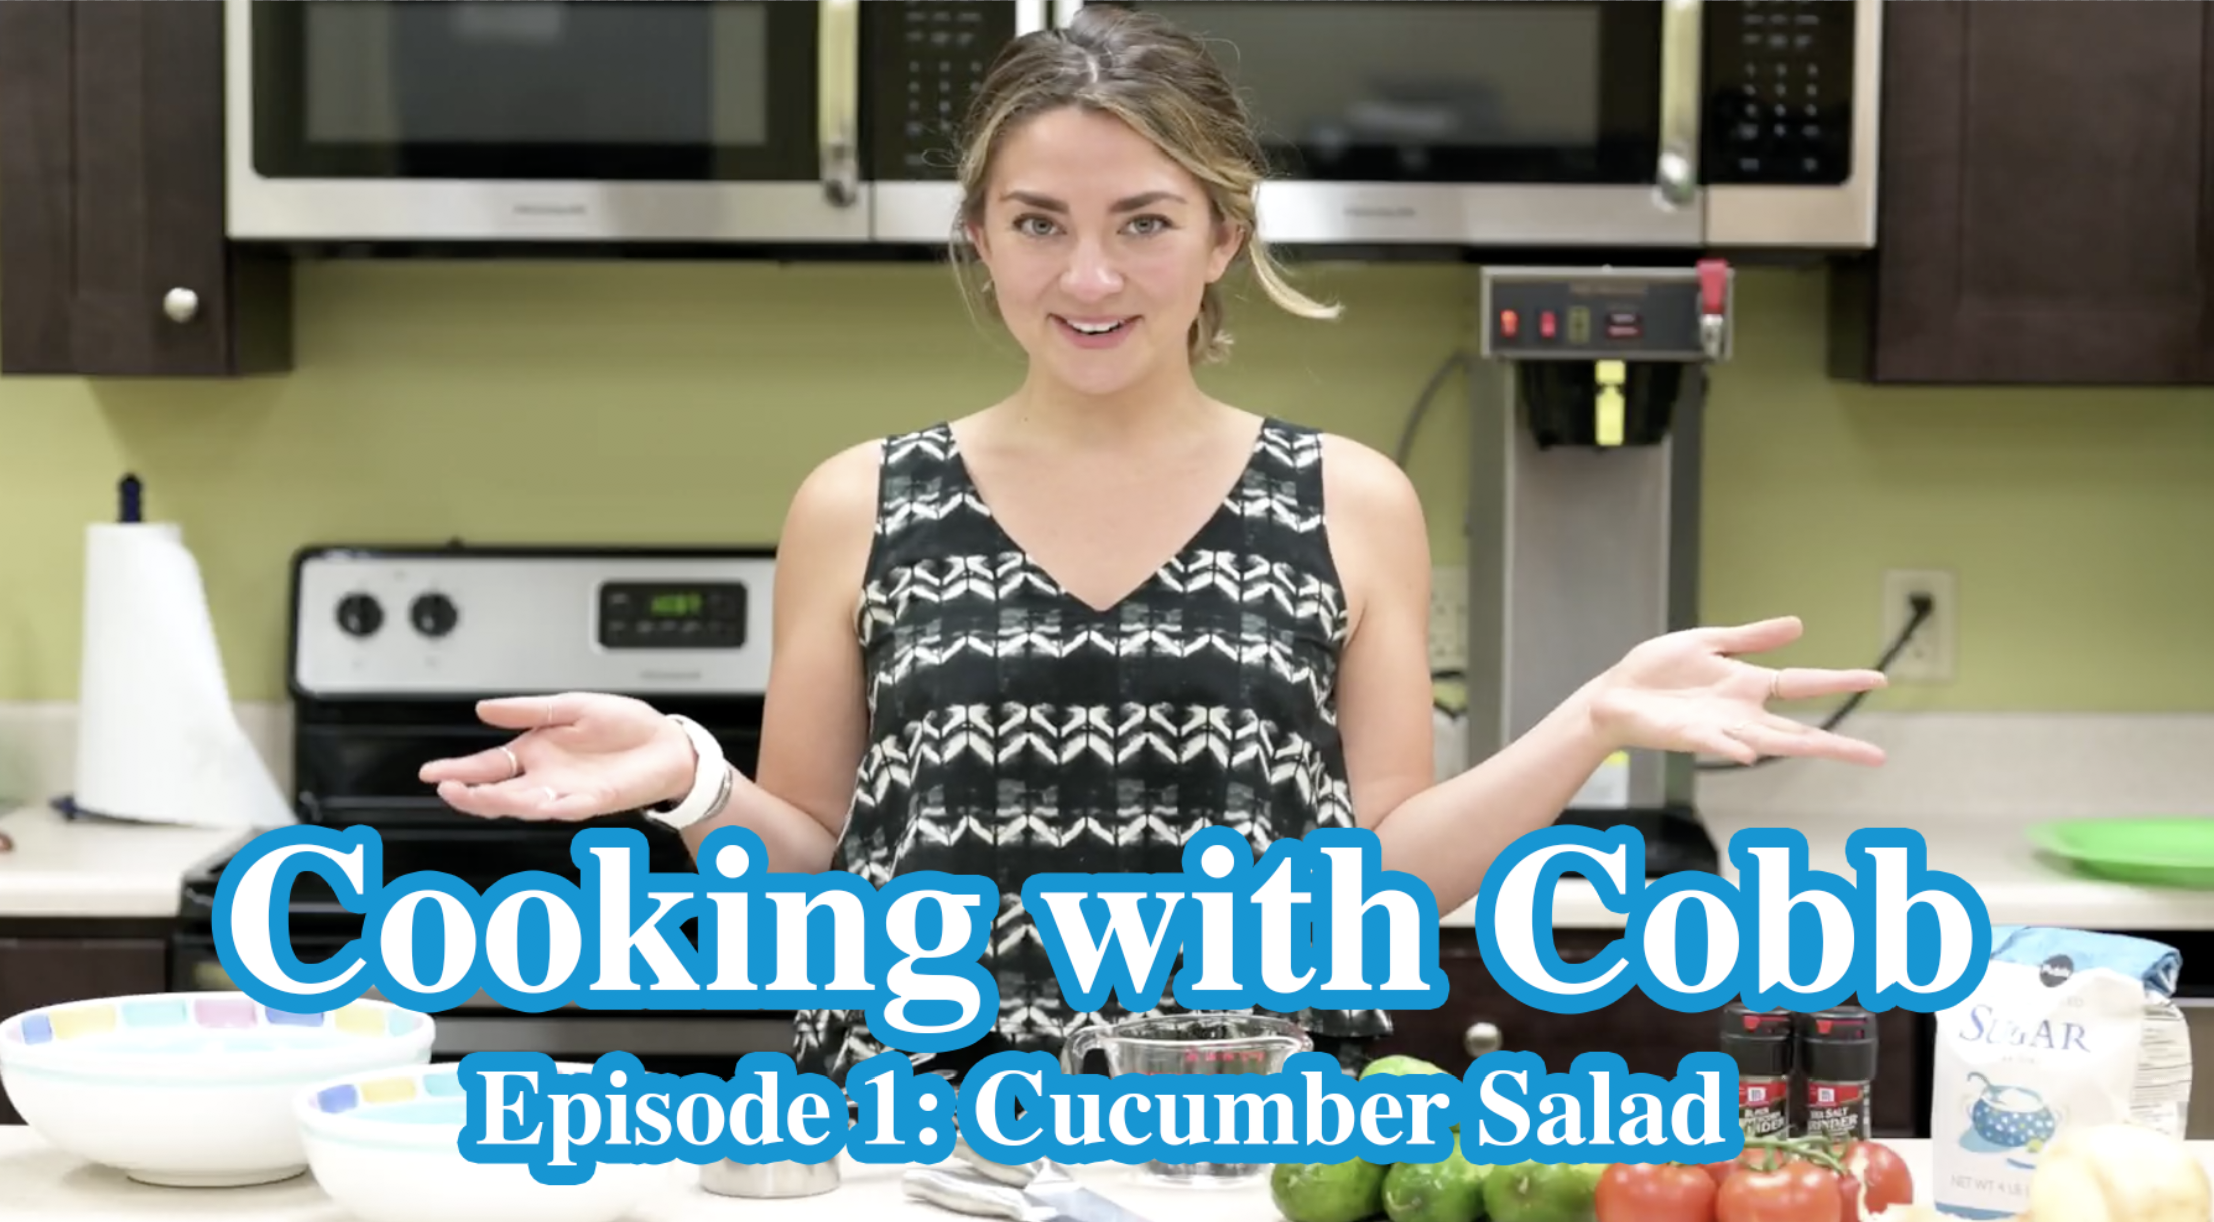 Cooking With Cobb - Cucumber Salad